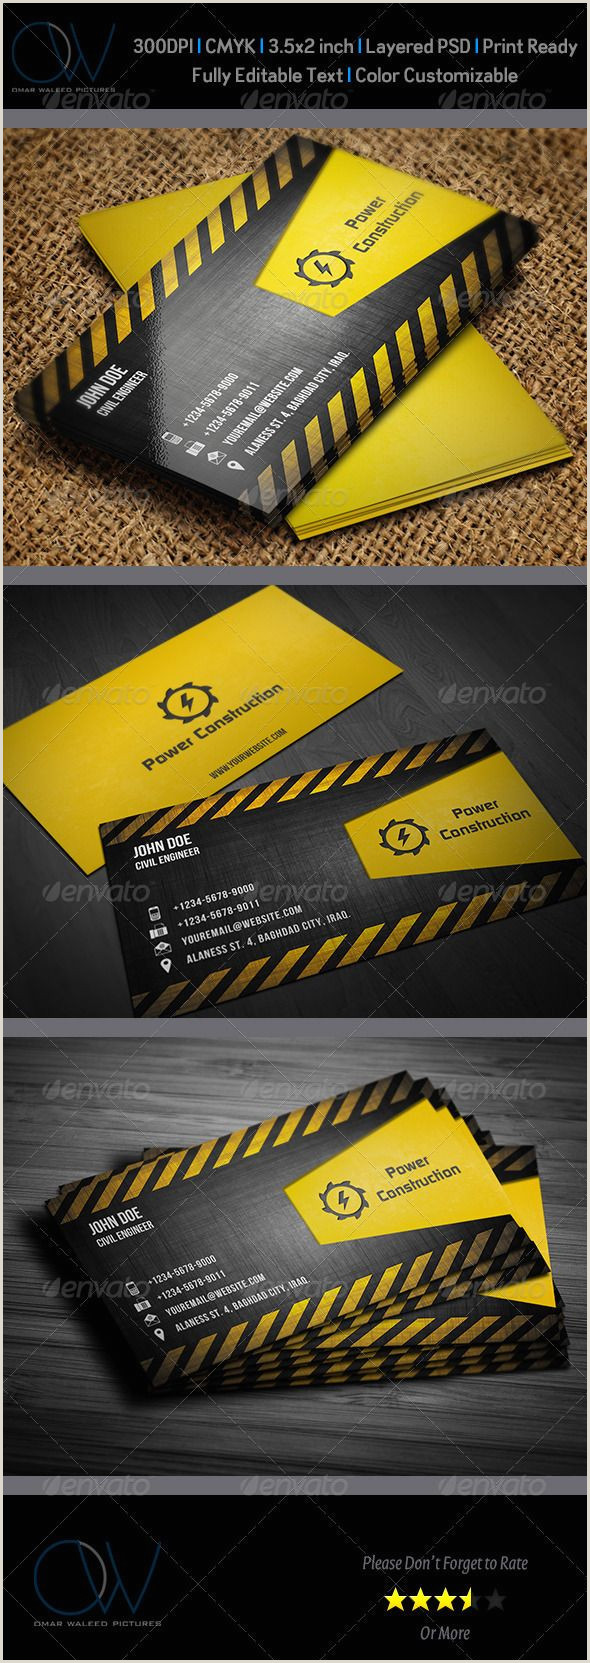 Construction Images For Business Cards Construction Business Card